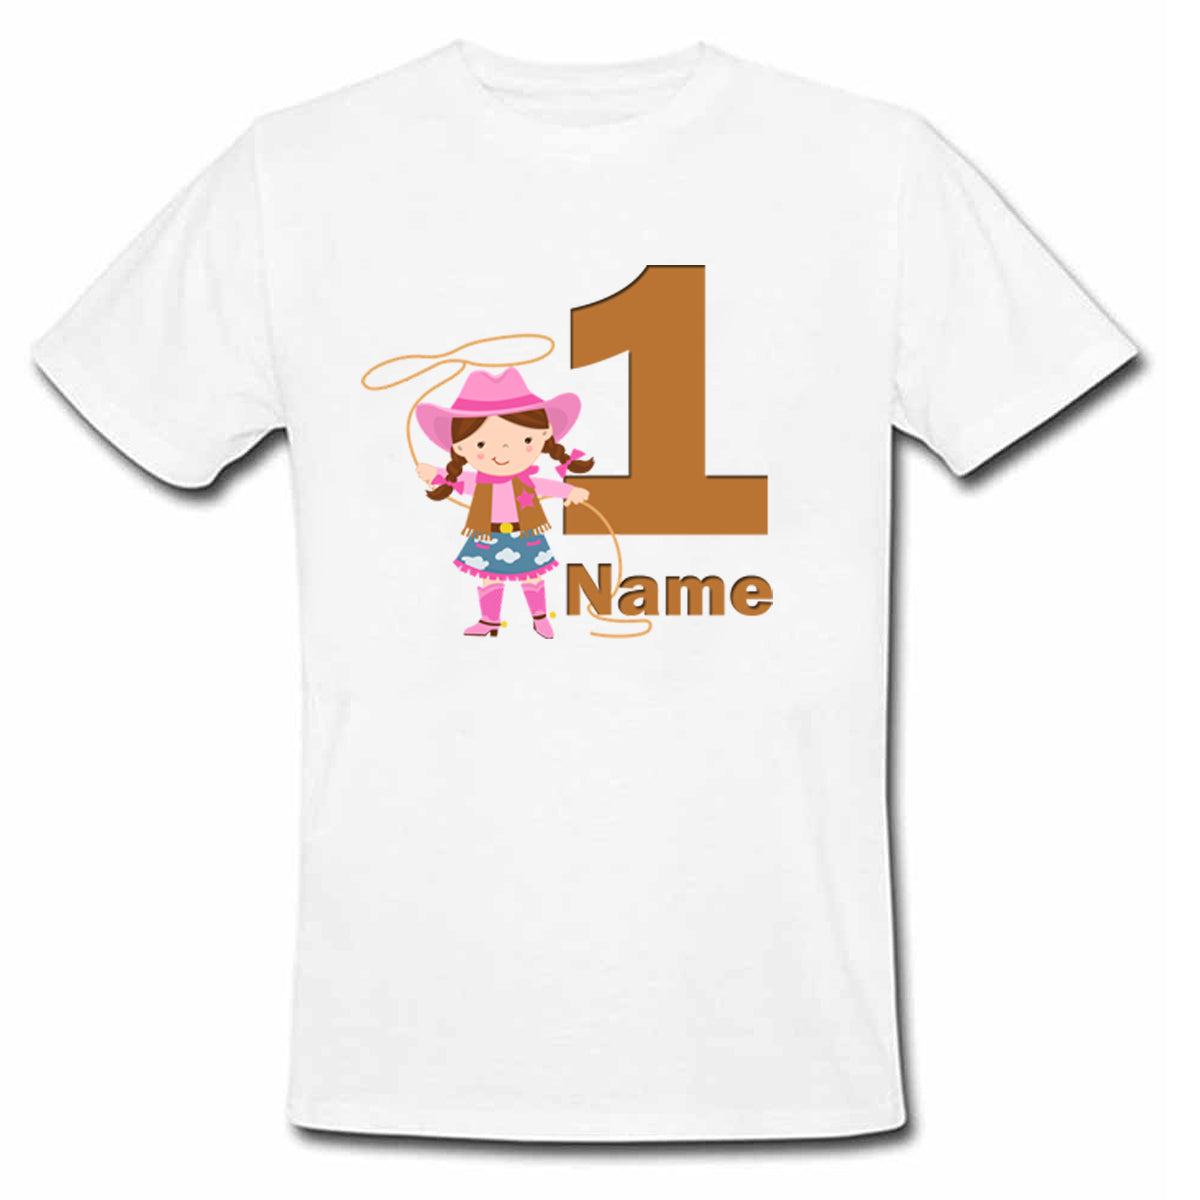 Sprinklecart Personalized Name Printed Cow Girl First Birthday Poly-Cotton T Shirt Wear for Kids (White)